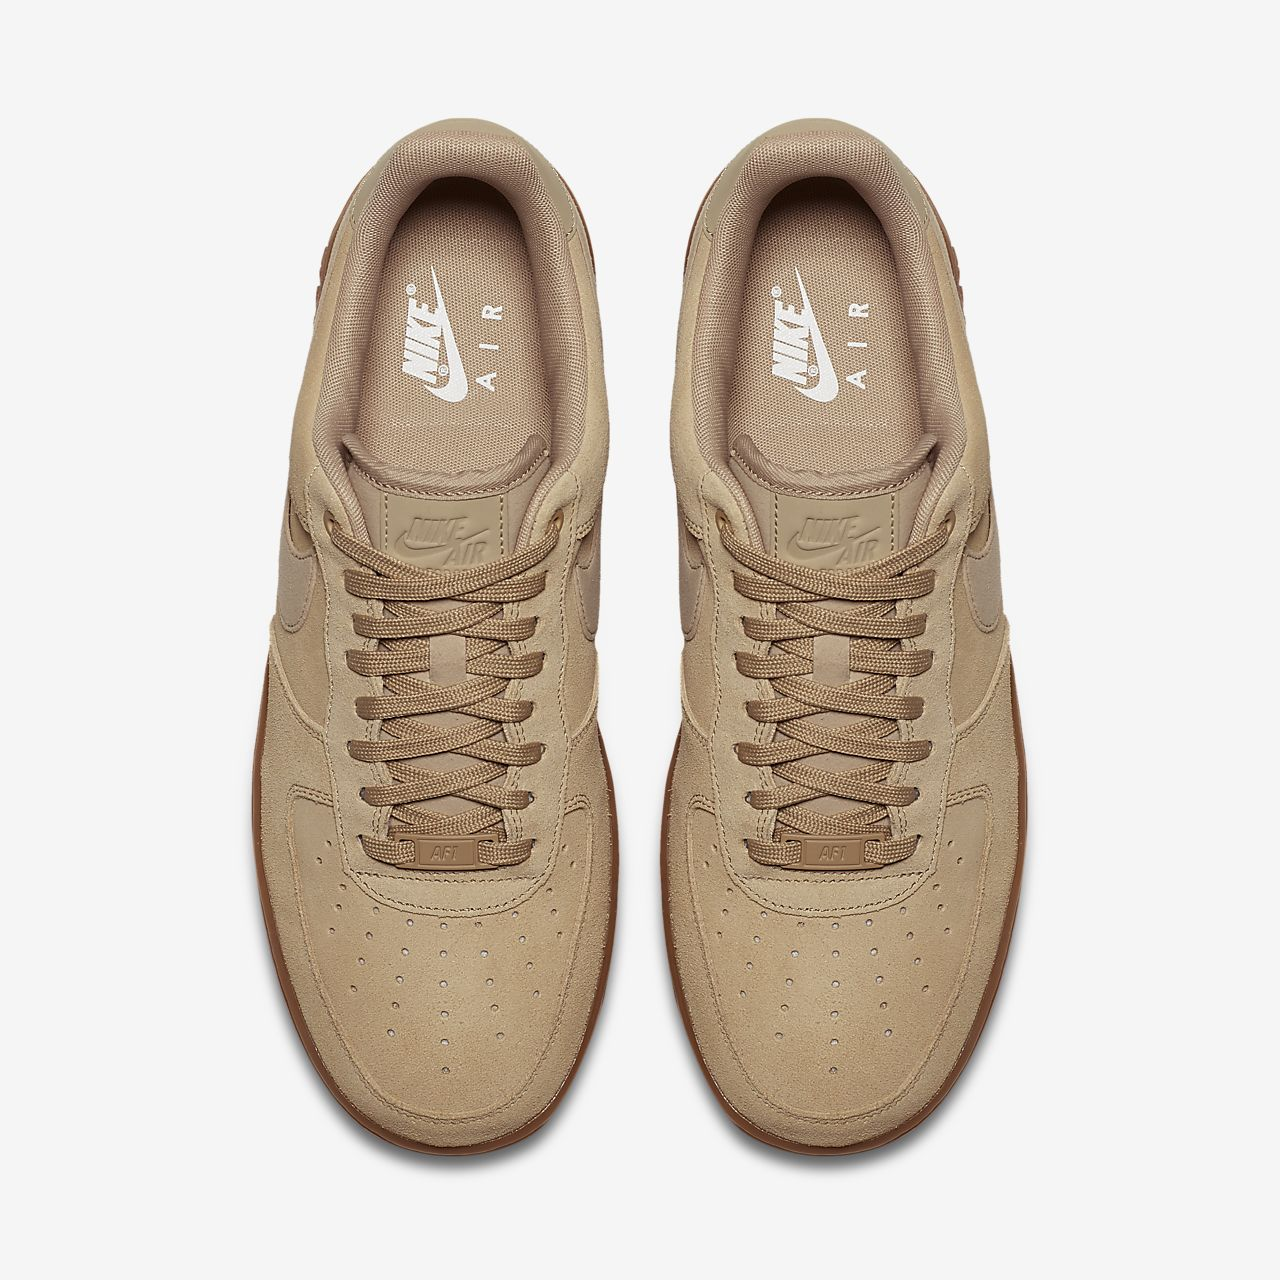 Low Resolution Nike Air Force 1 07 LV8 Suede Men's Shoe Nike Air Force 1 07  LV8 Suede Men's Shoe